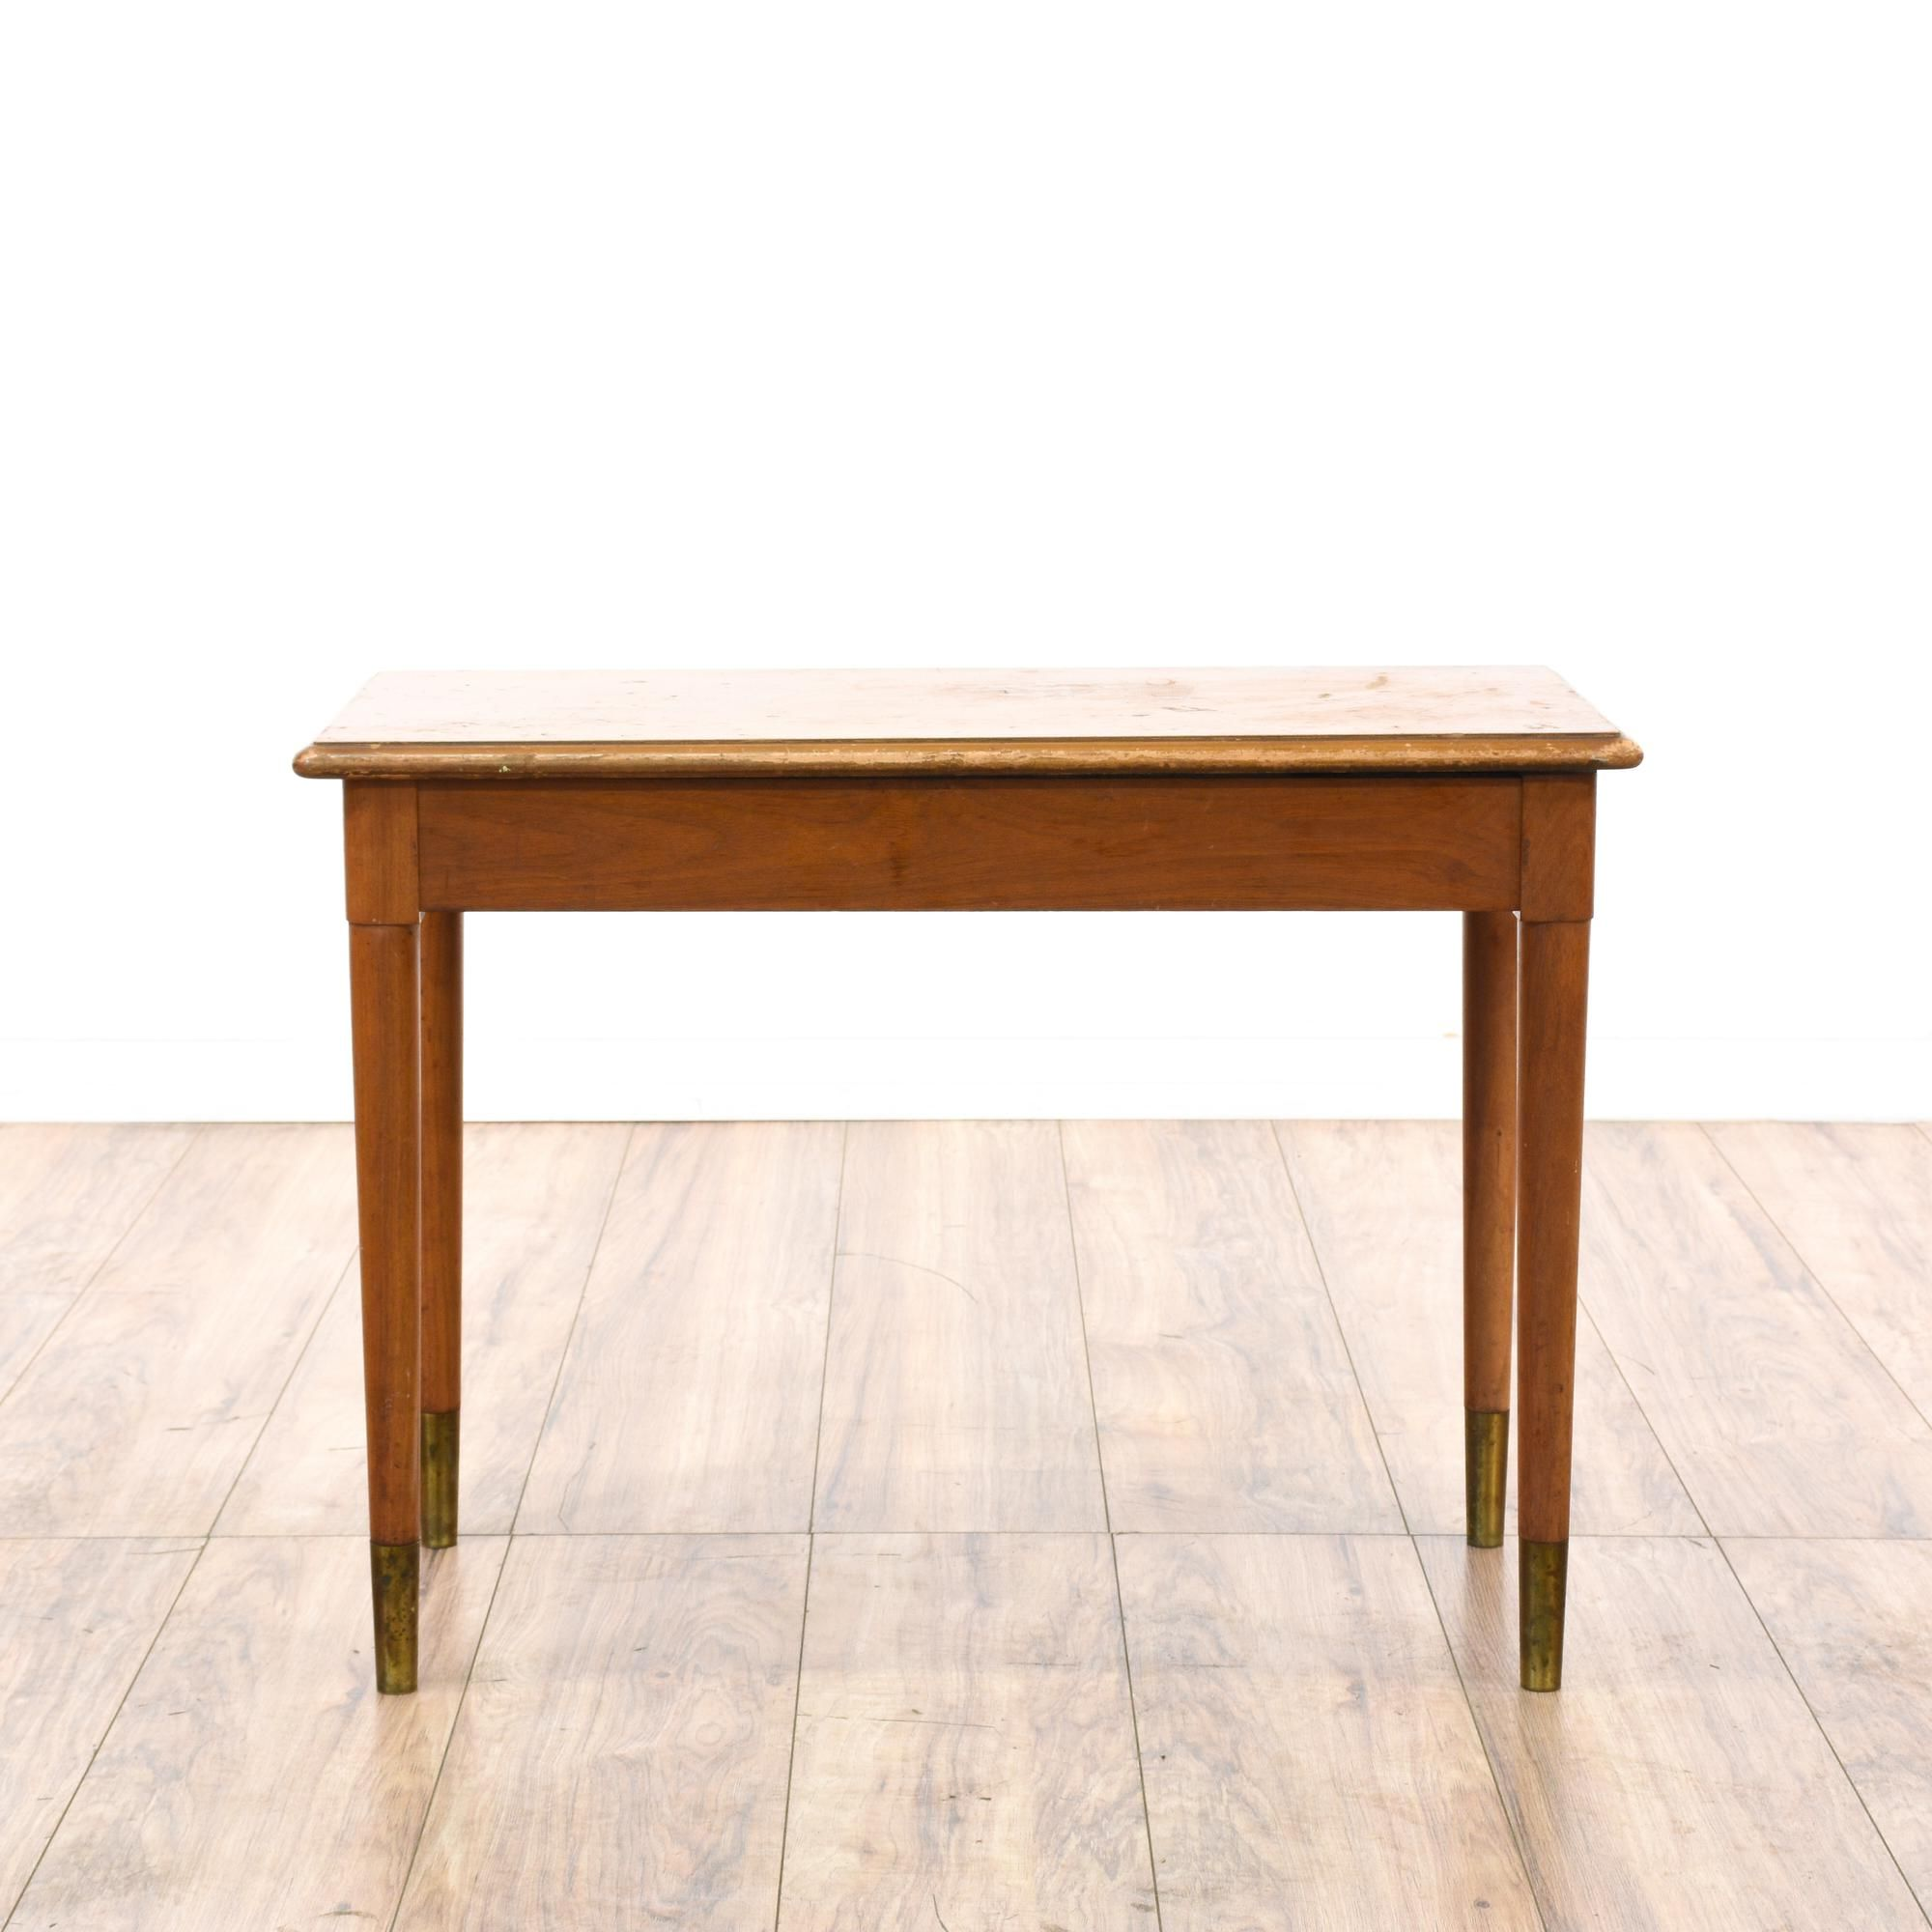 This Mid Century Modern Storage Bench Is Featured In A Solid Wood With A  Glossy Maple